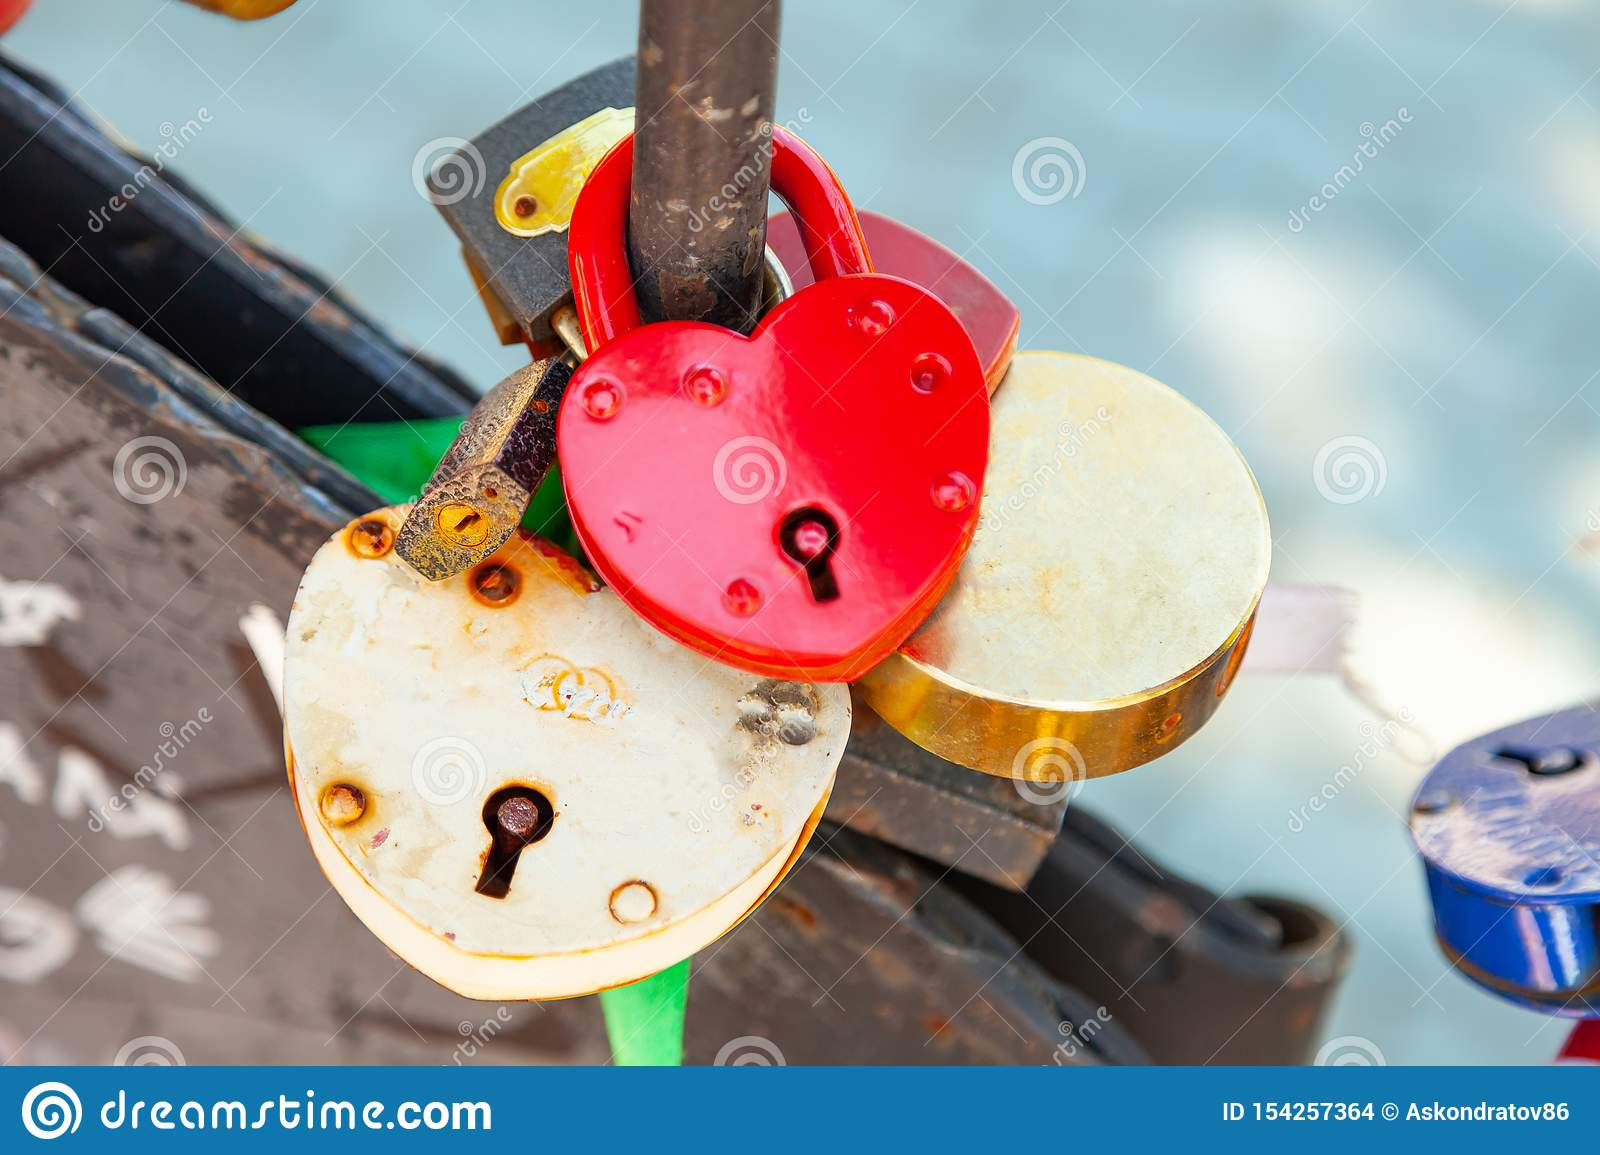 Close-up on locks of hearts in different colors and shapes hanging on the fence as a sign of eternal love, which is hung during